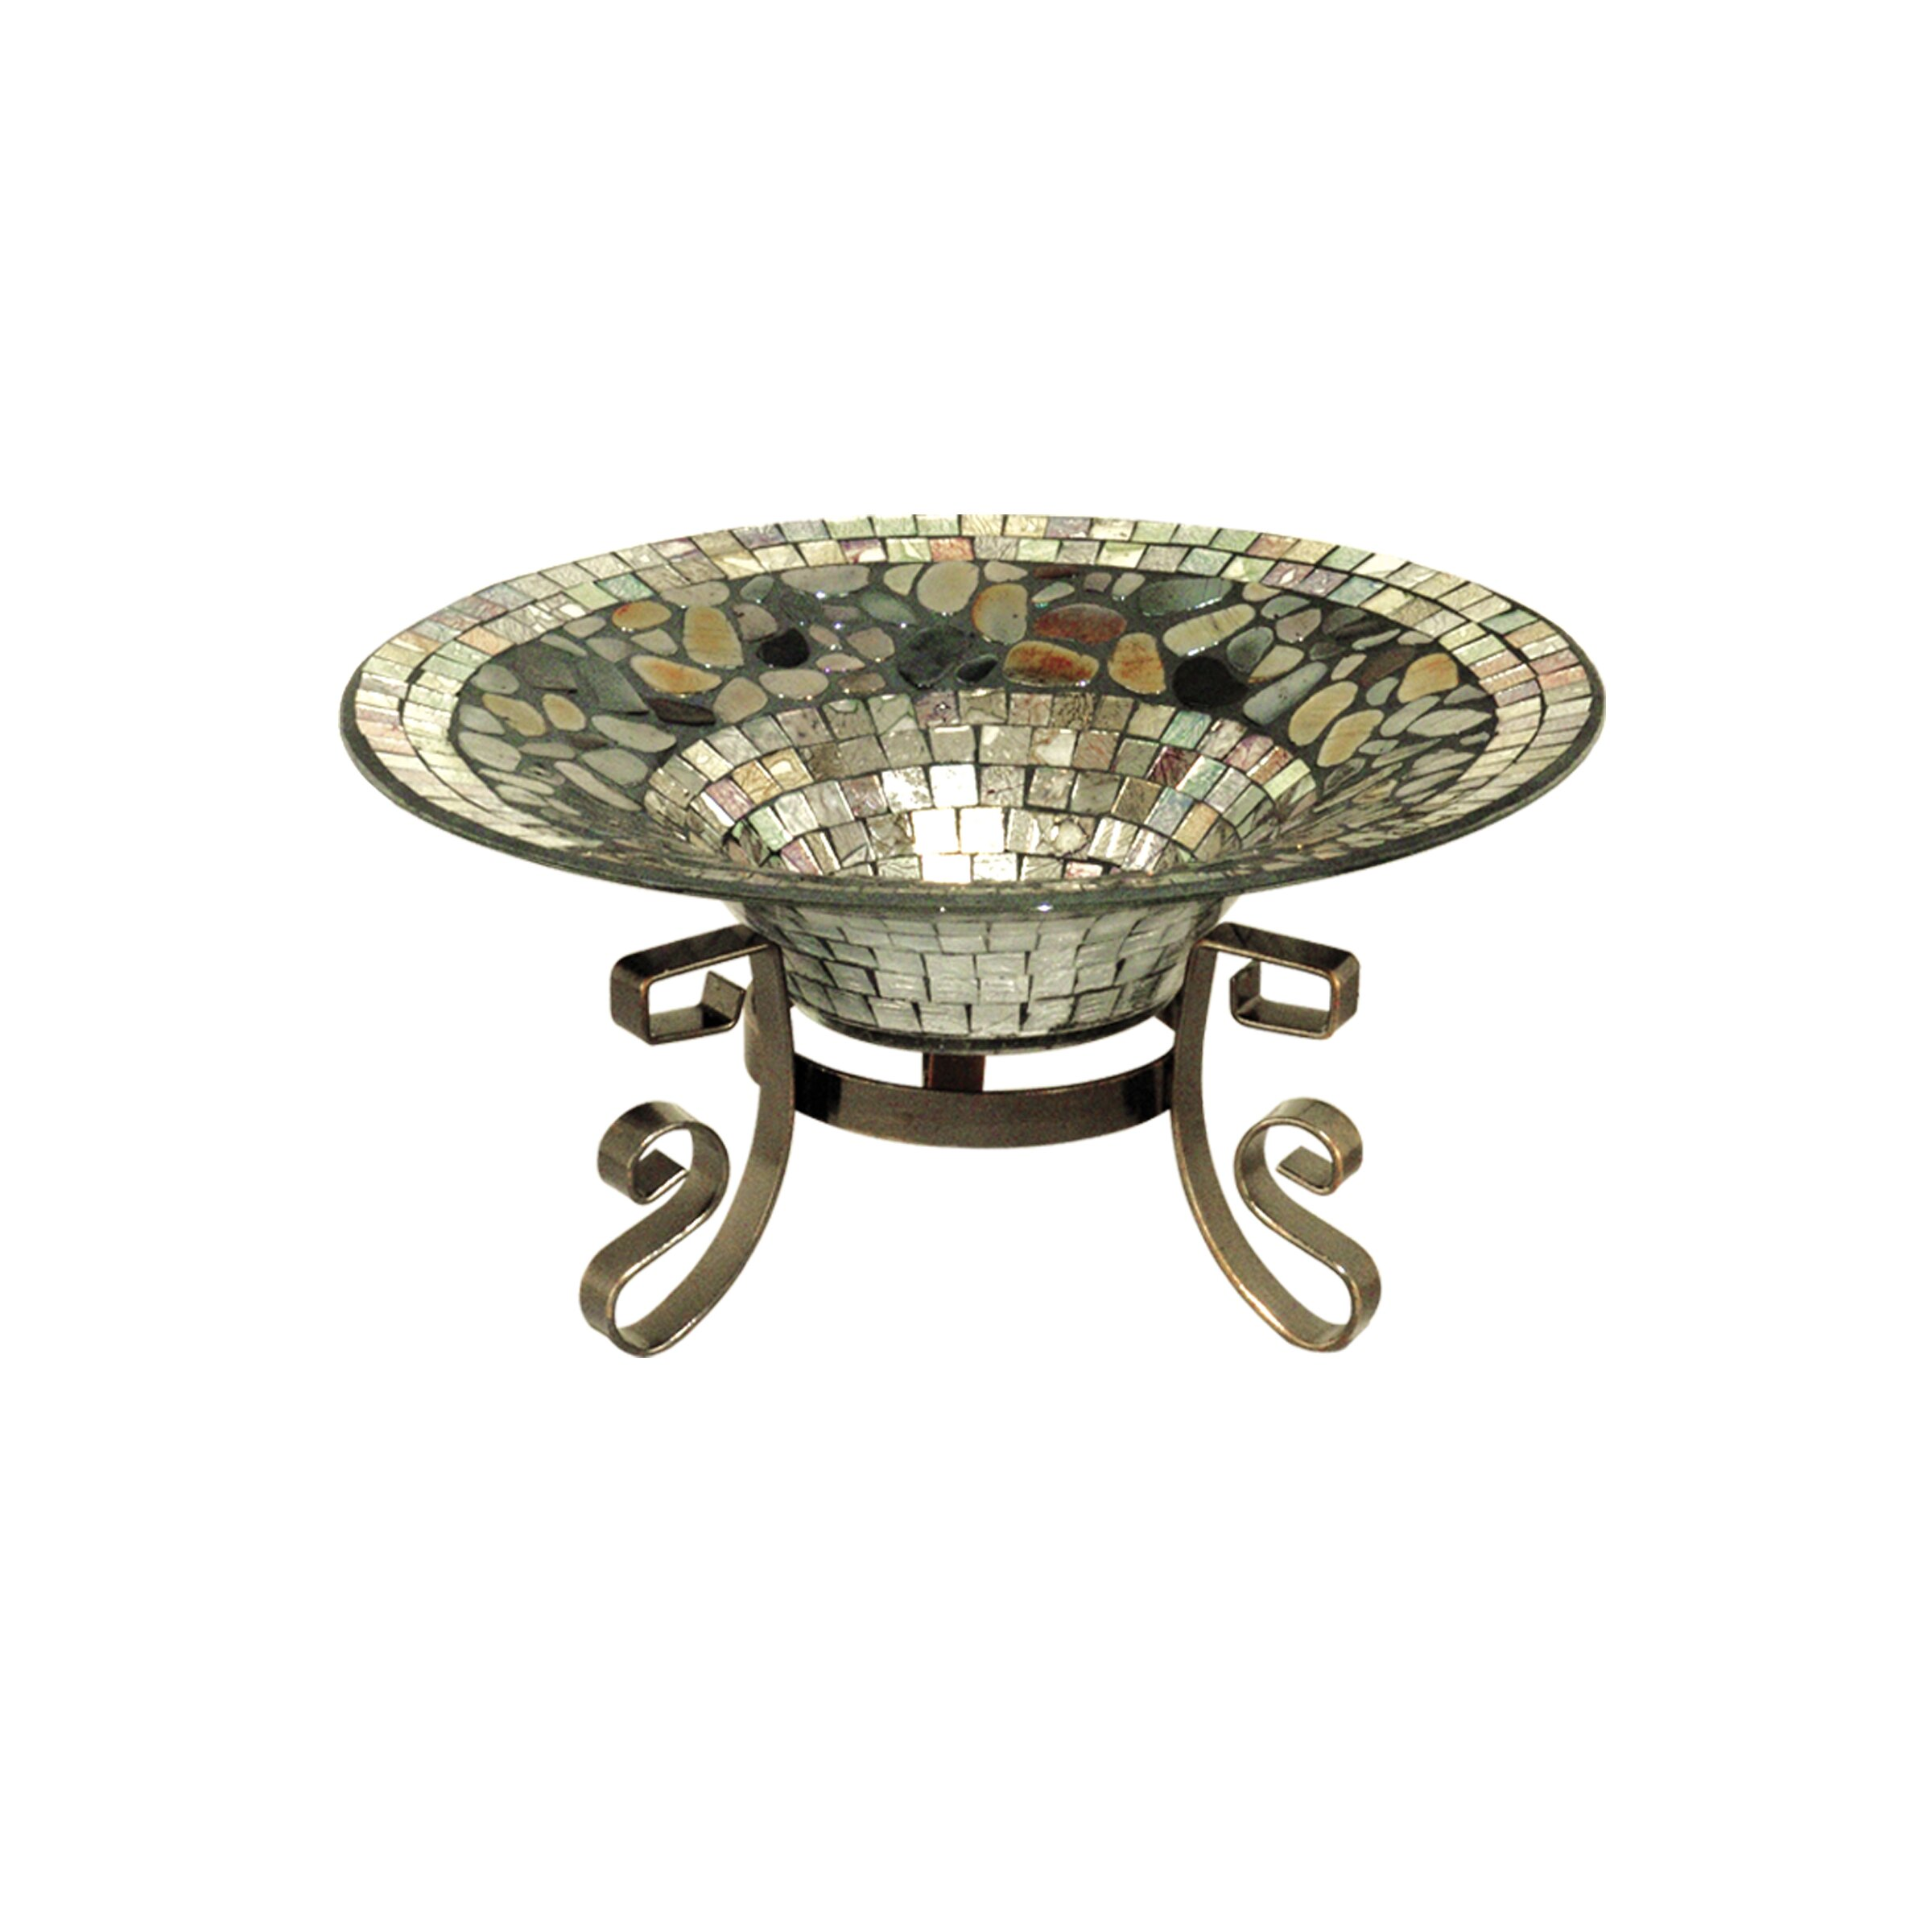 Dale Tiffany Decor Bowl With Stand Wayfair Ca